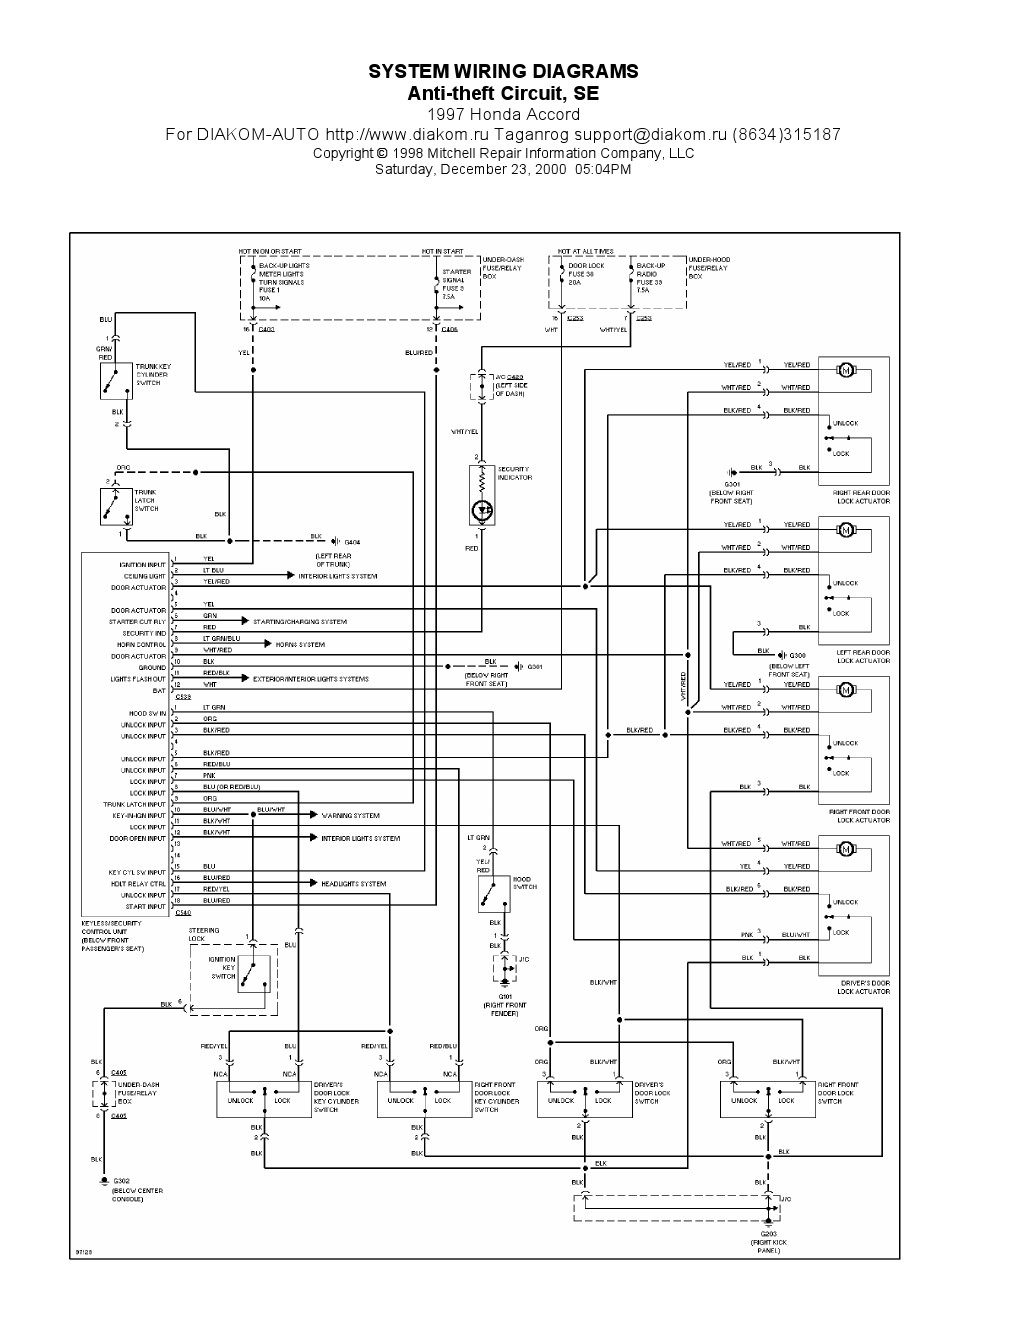 [DIAGRAM] 2003 Honda Accord Wiring Diagram FULL Version HD